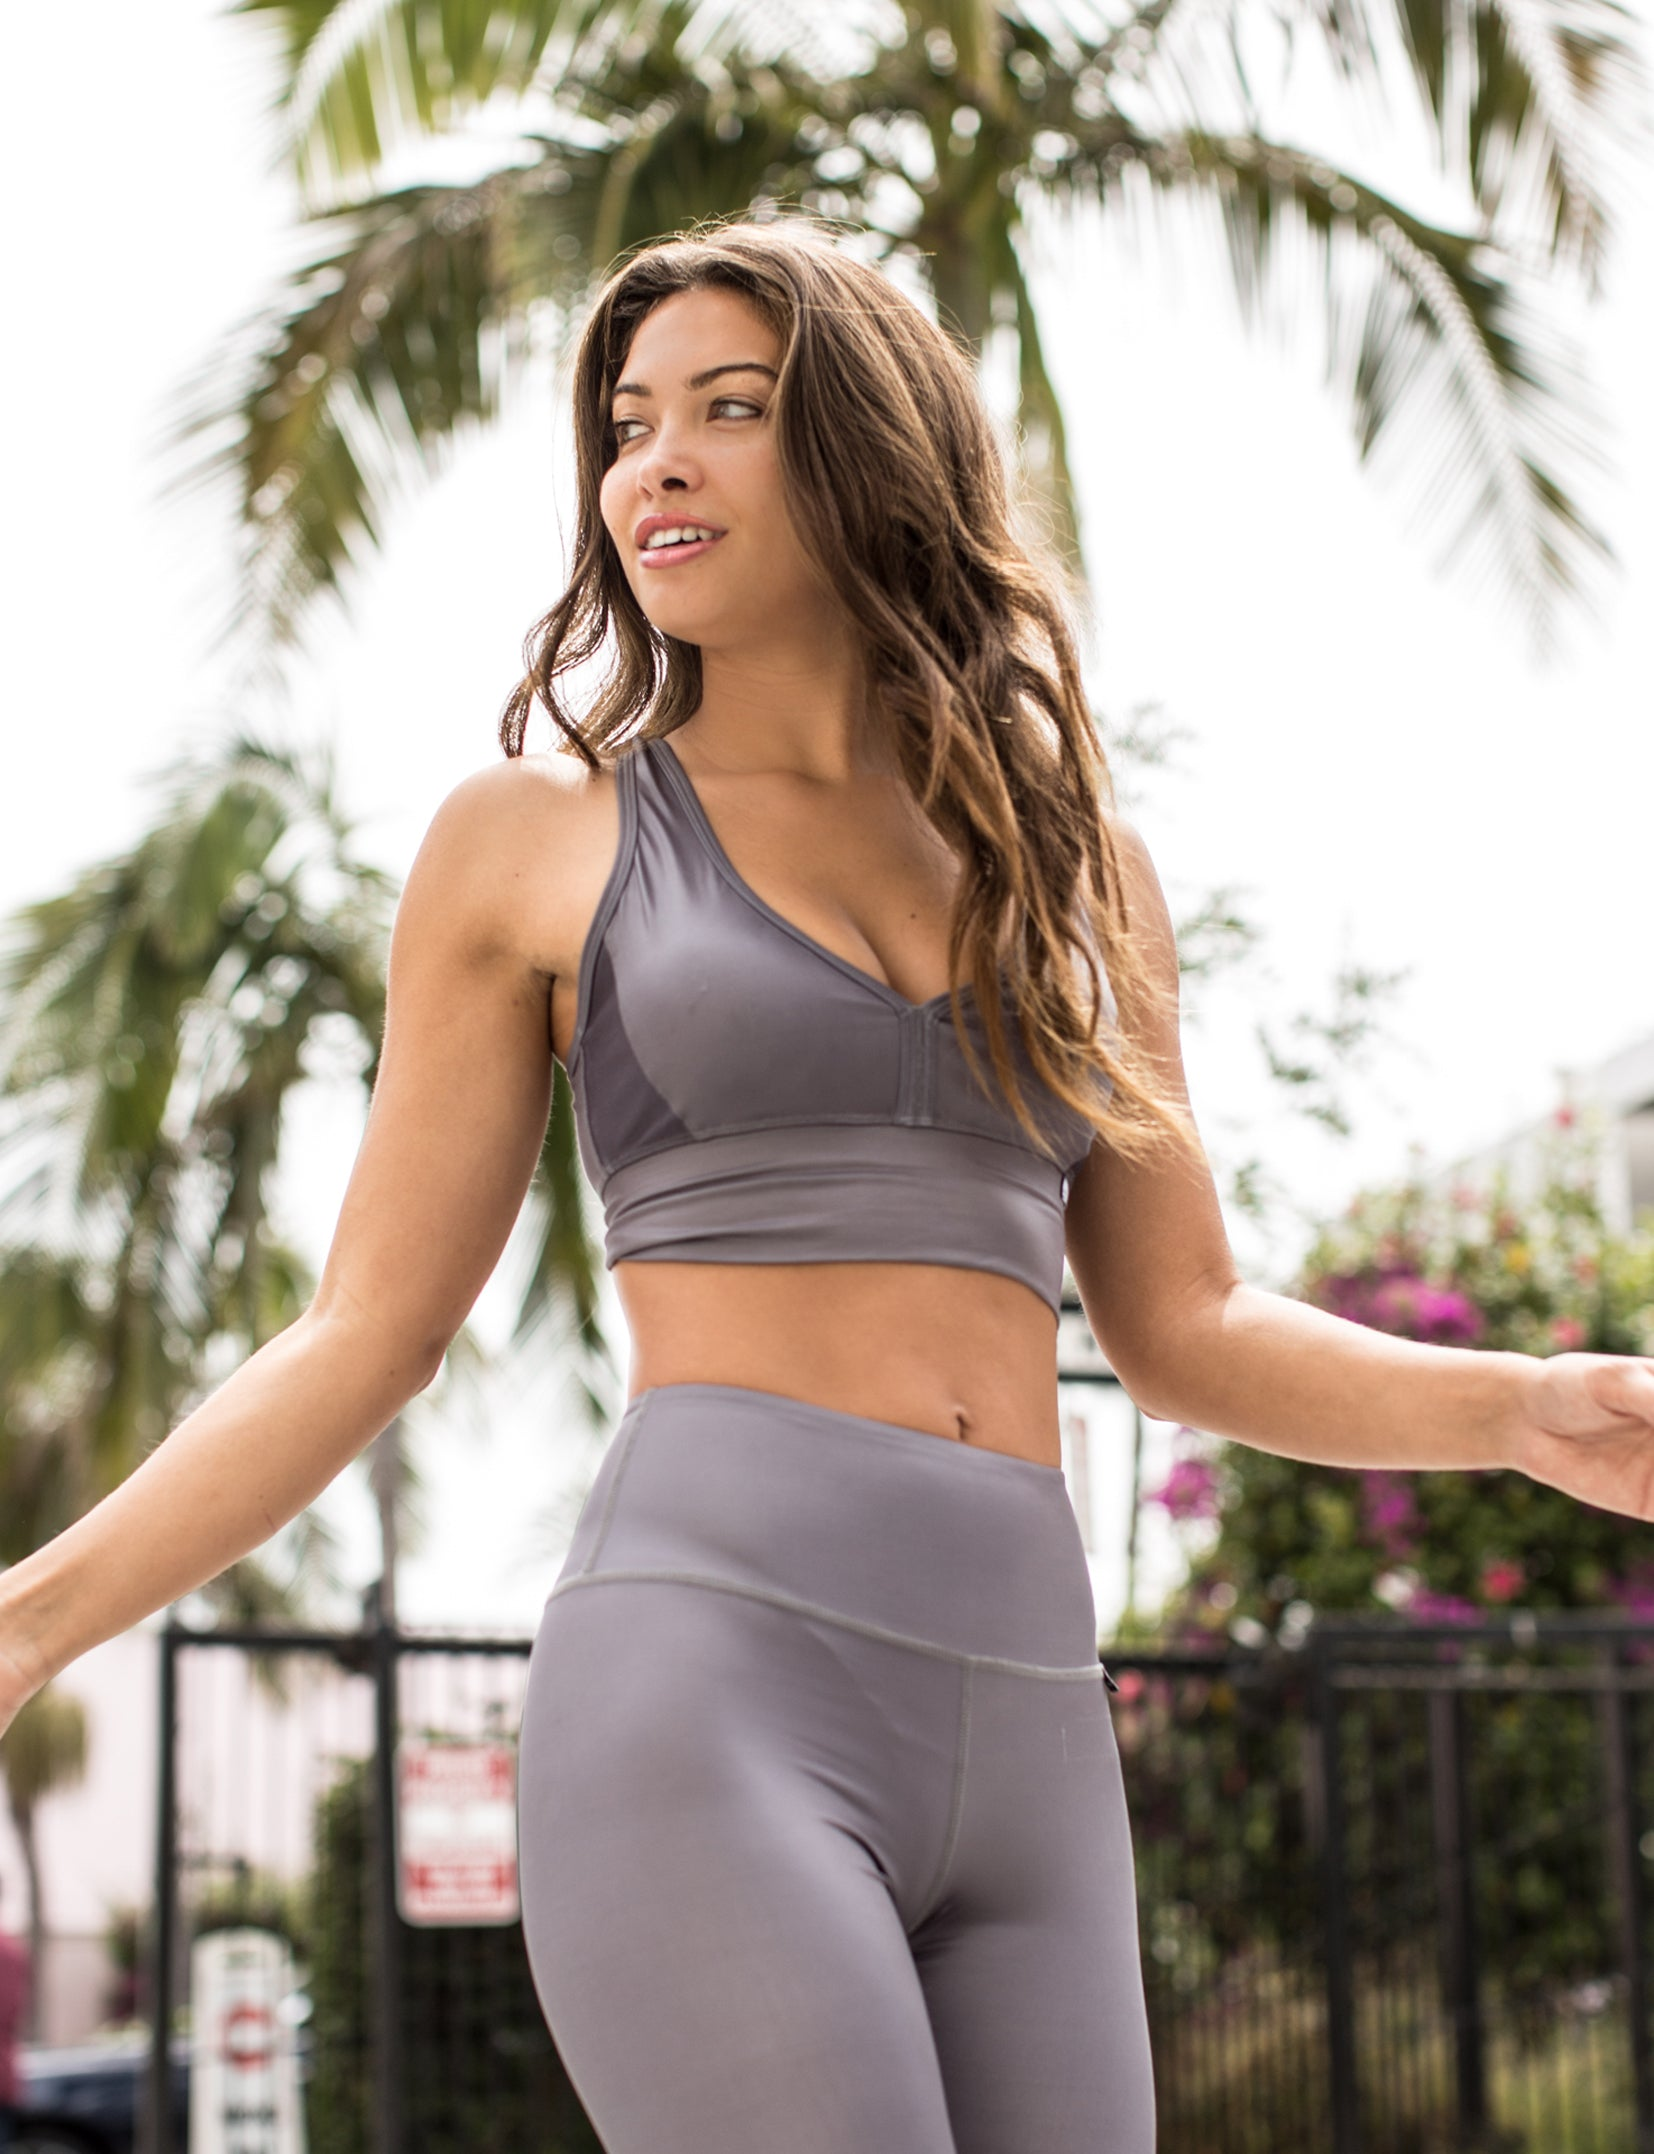 Activewear womens, Nubyen activewear, workout clothes, activewear, womens activewear pants, womens, yoga, active wear, activewear, athletics leggings, women's activewear, womens workout clothes, gym outfits for women, nubyen activewear, nubyen second skin, nubyen Topshop, topshop activewear, asos, asos activewear, nubyen asos,  tala activewear, sweaty betty,